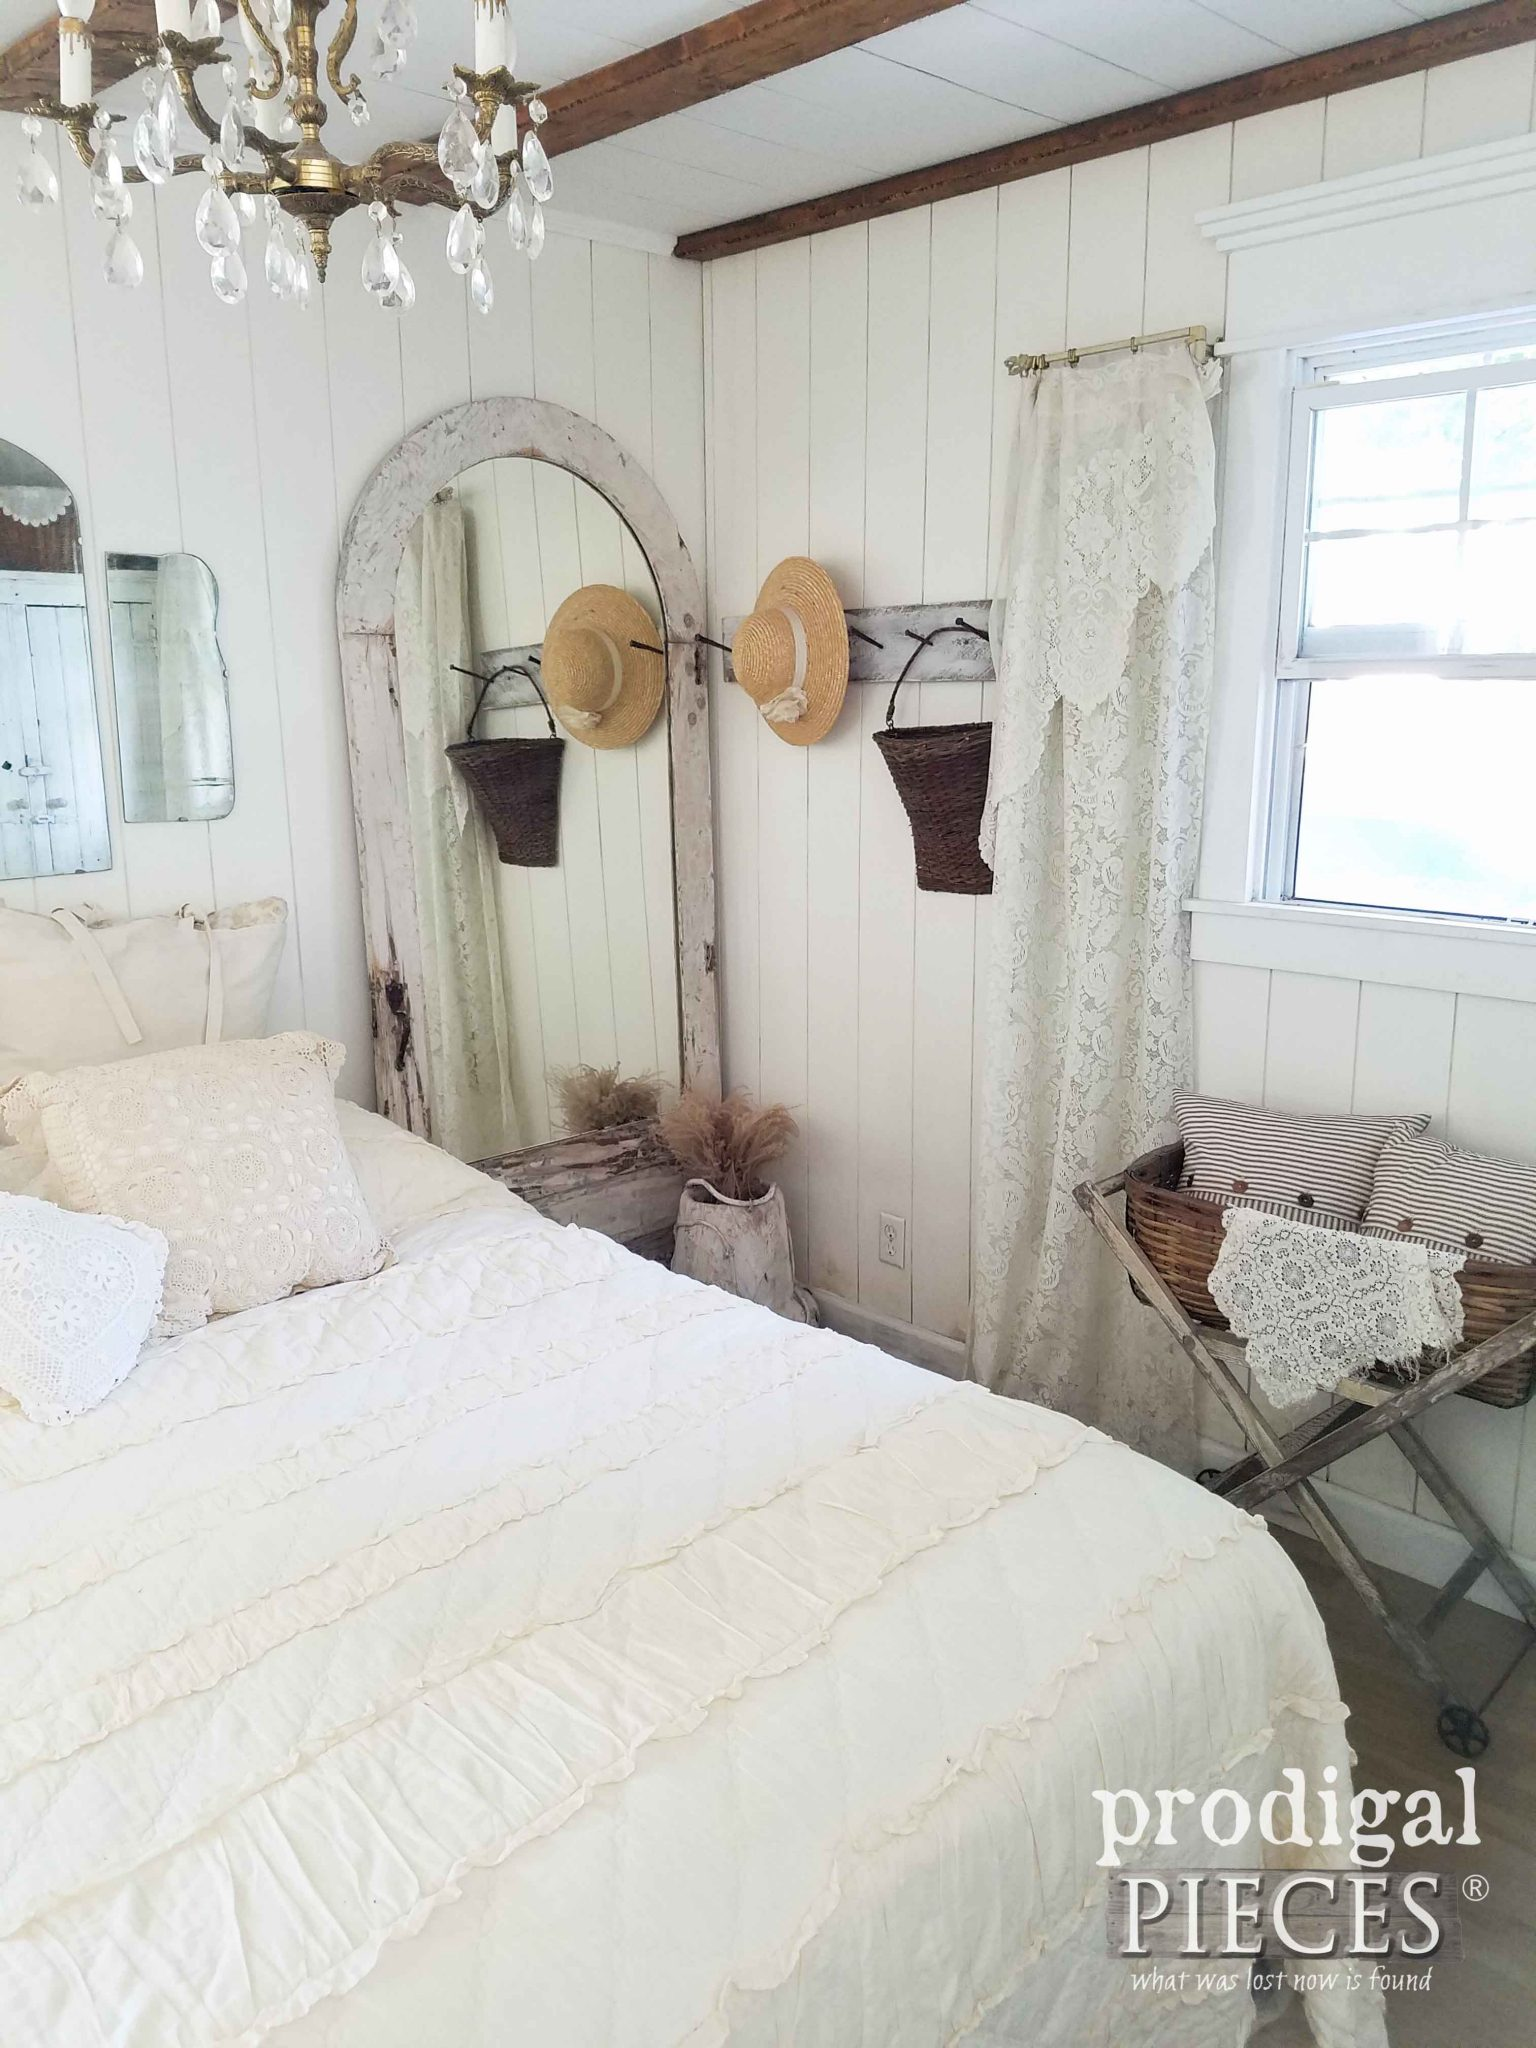 Farmhouse Style Bedroom Decorated with Repurposed and Found Items by Prodigal Pieces | prodigalpieces.com